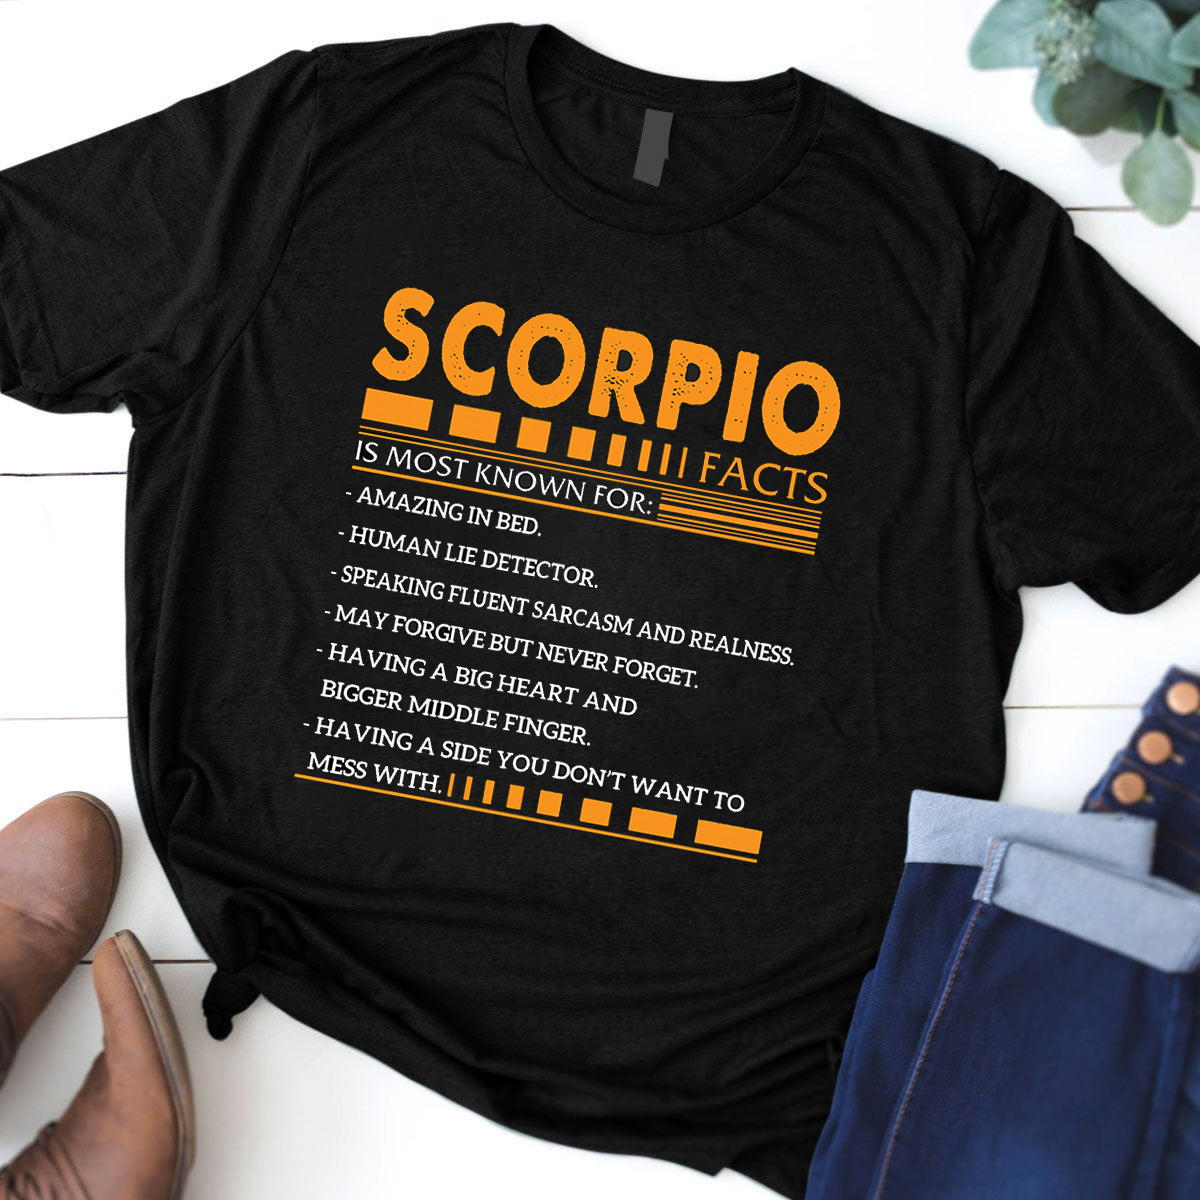 Scorpio Facts Is Most Known For Shirt